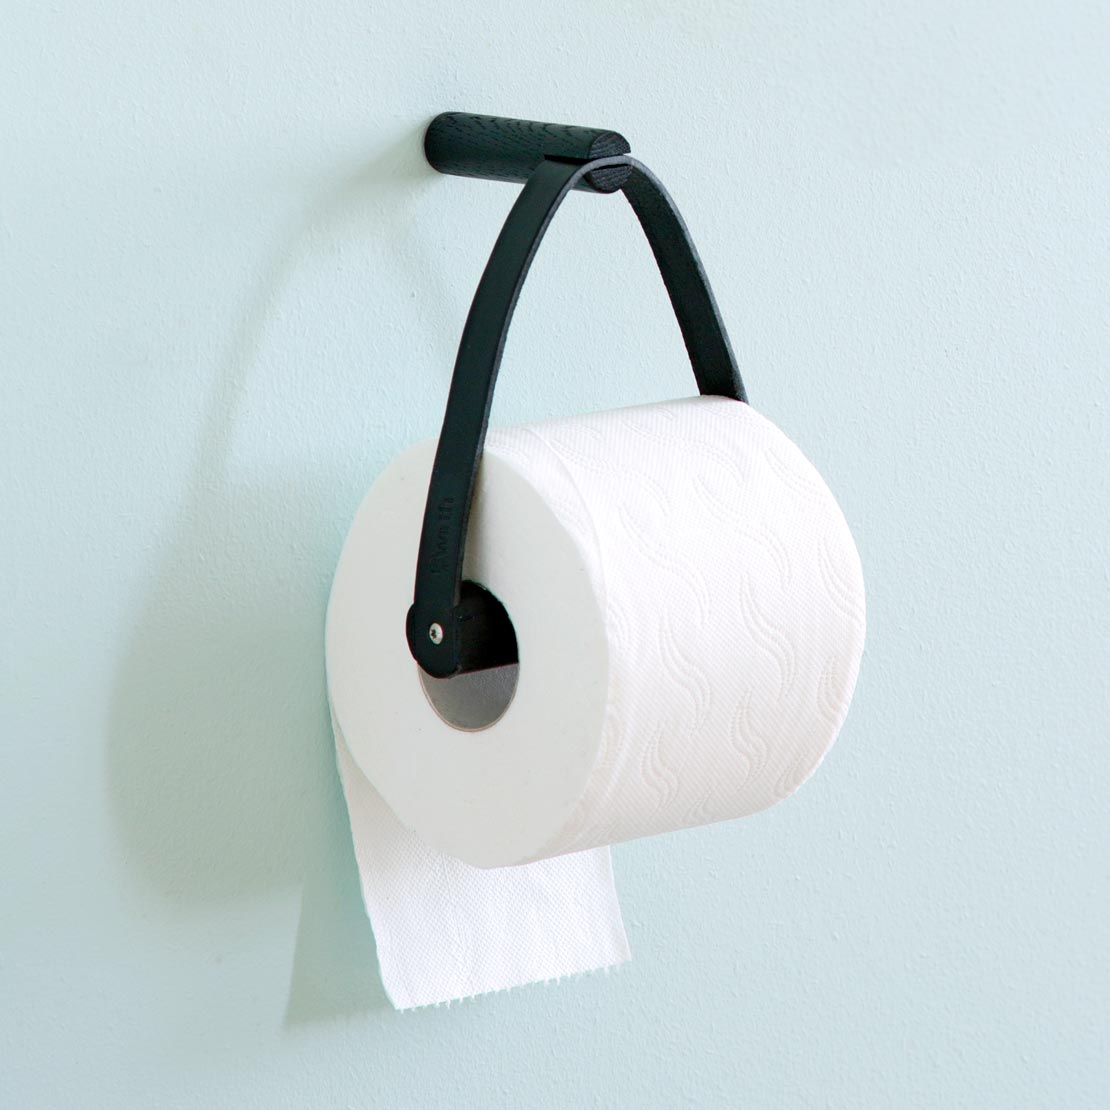 bywirth-ToiletPaperHolder-black-01-r1-1-1-web